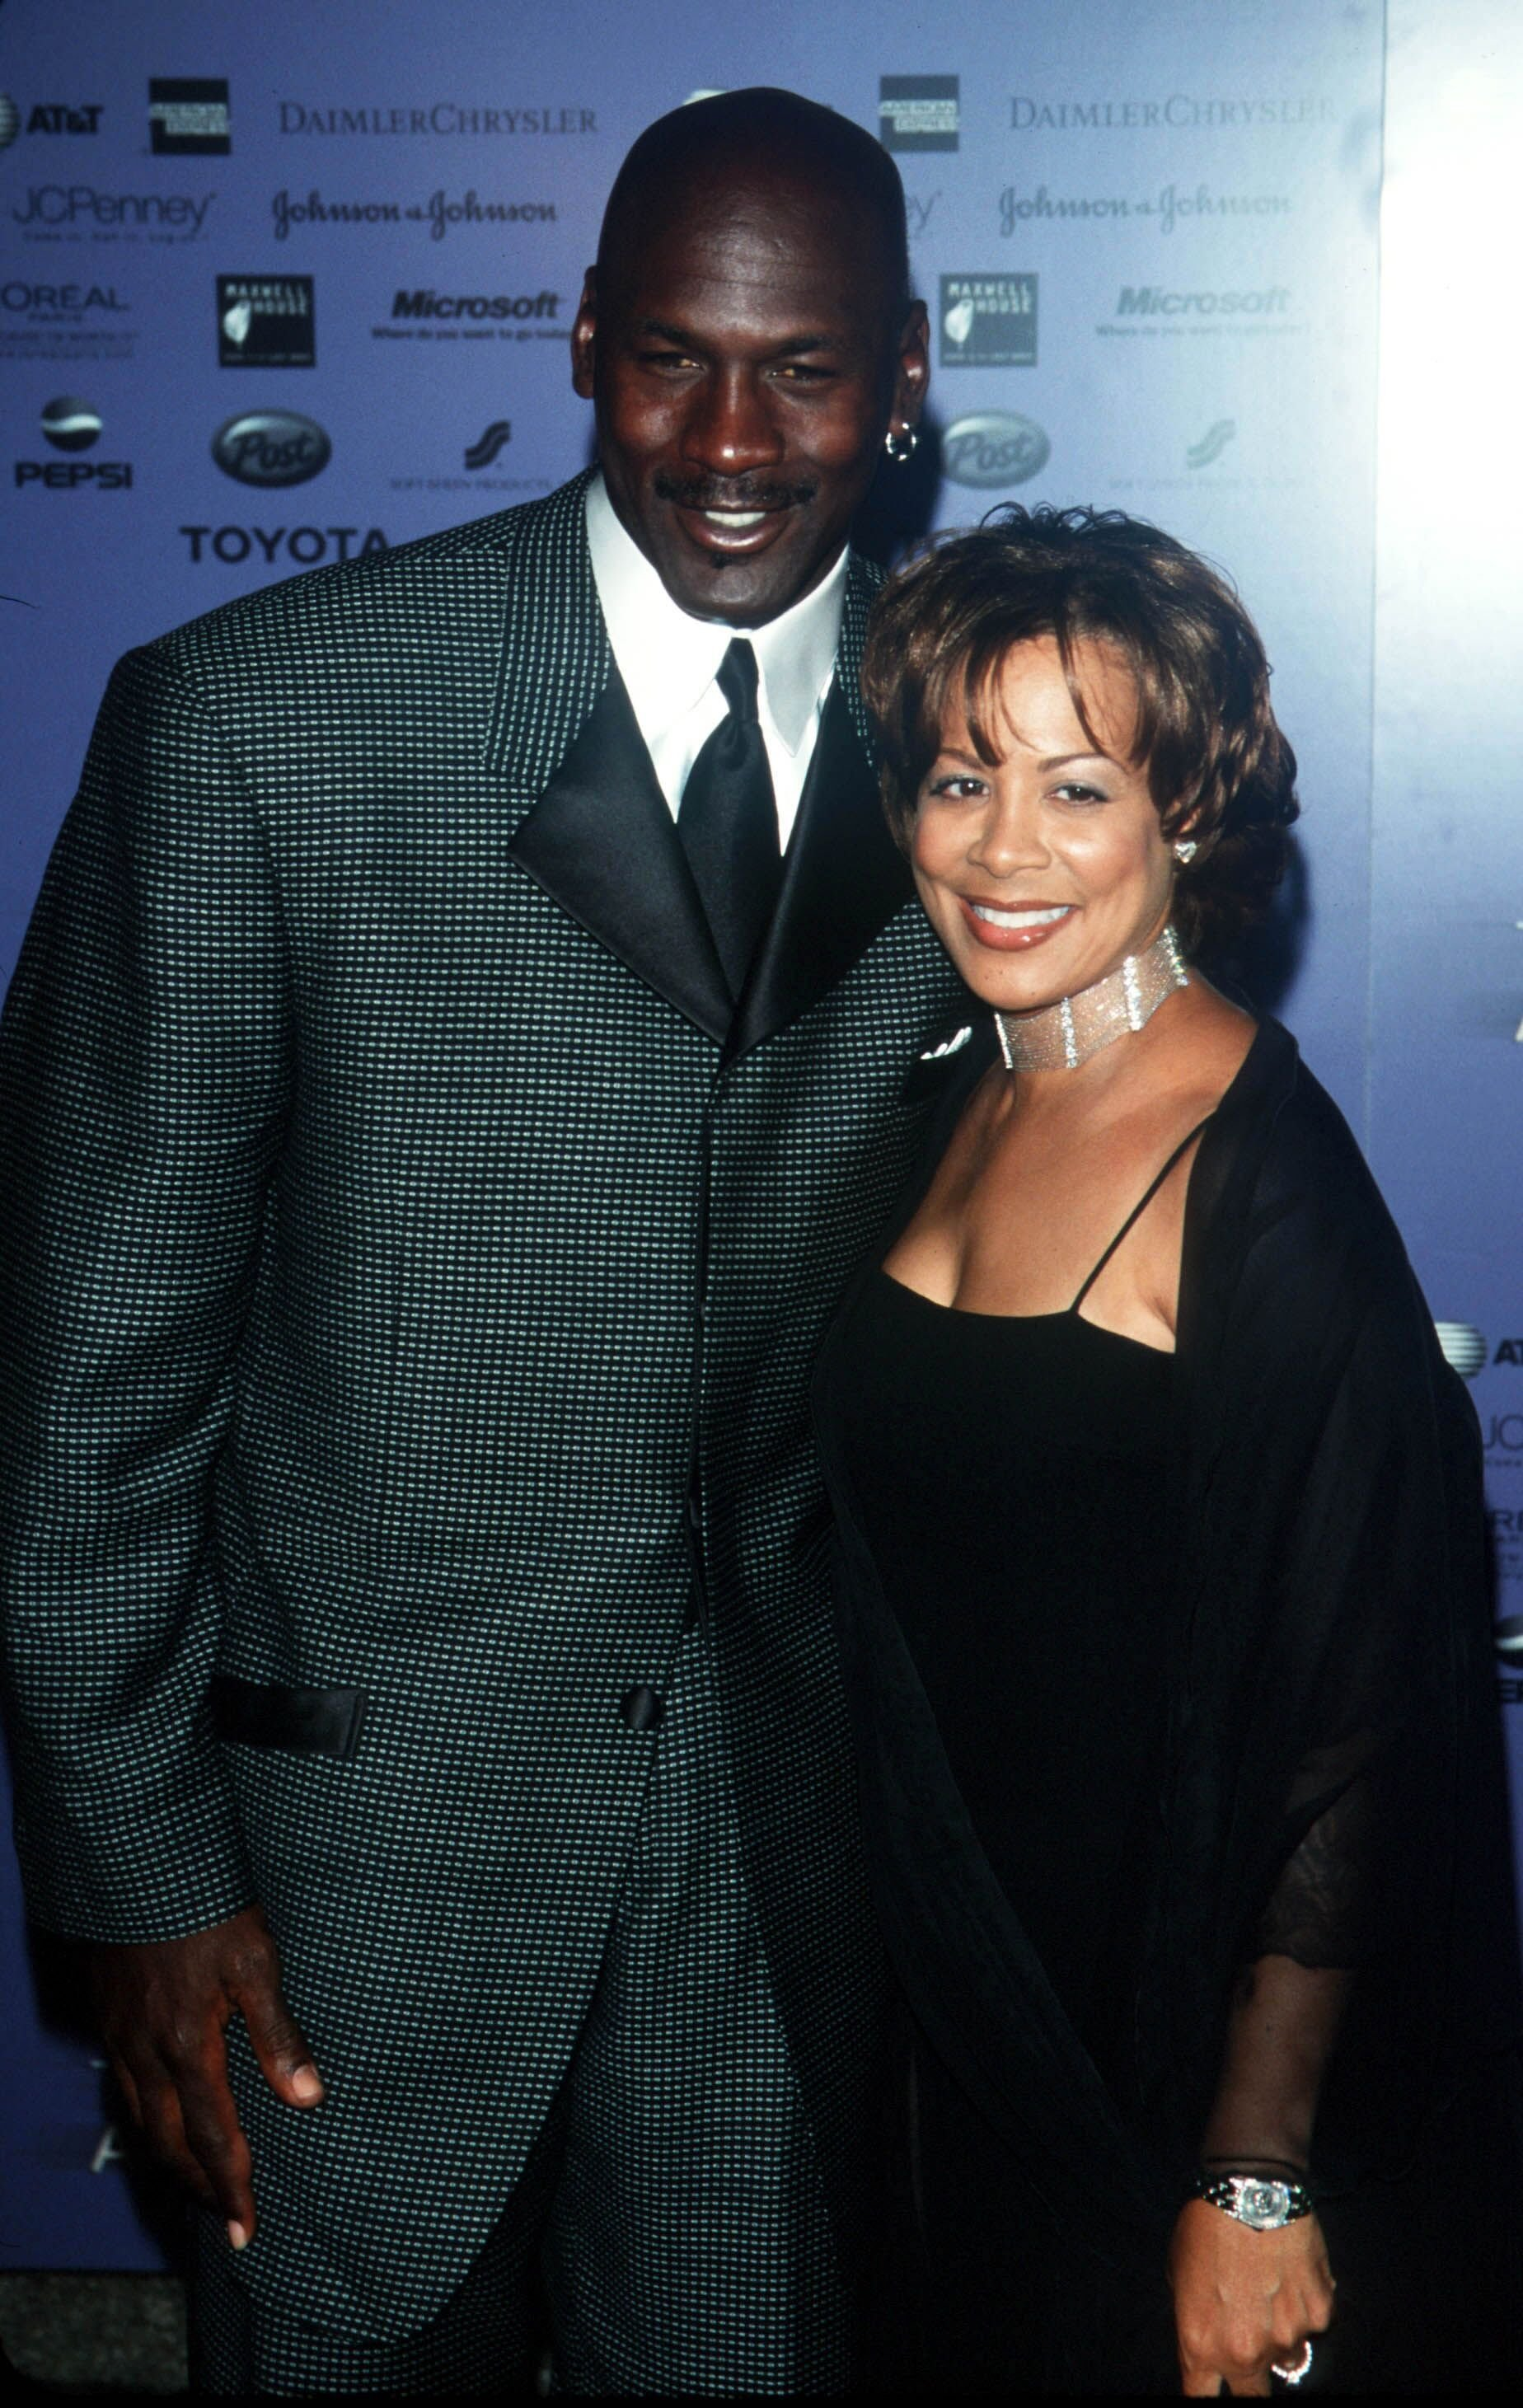 Michael Jordan and Juanita Vanoy at the New York City Essence Awards 2000 | Source: Getty Images